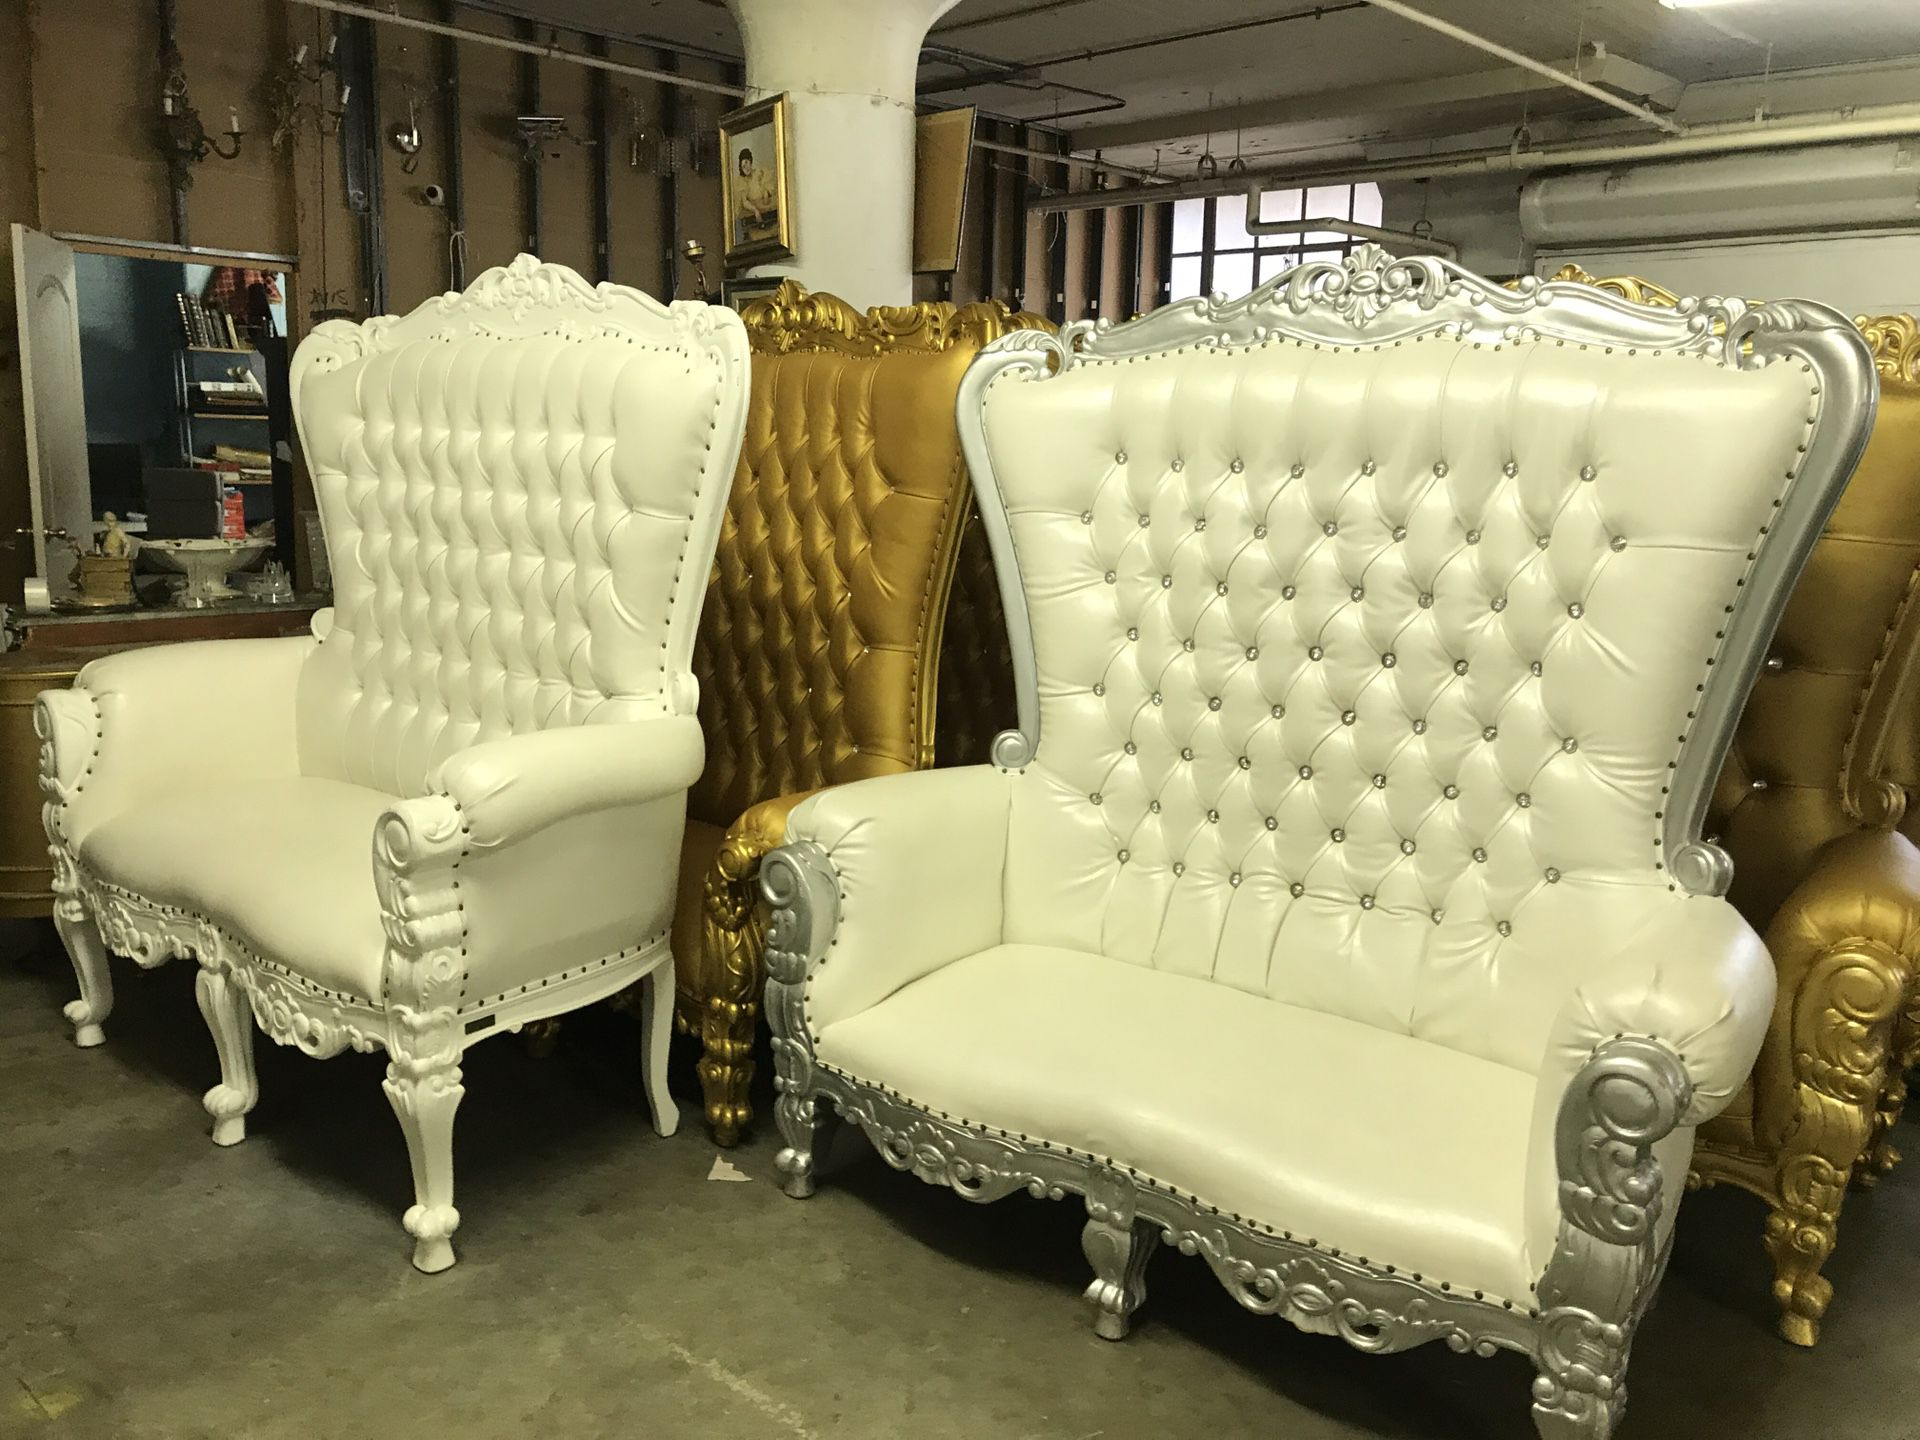 Beautiful throne chair.$2200. Best offer